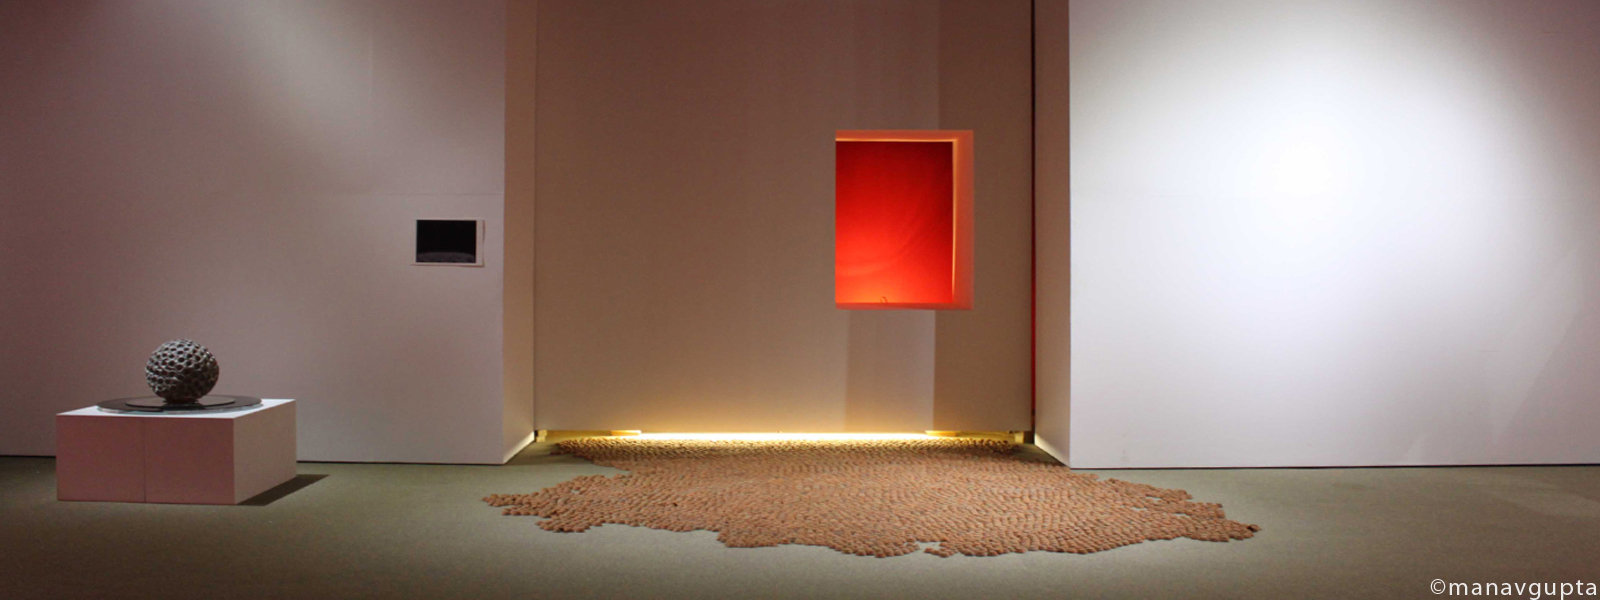 Manav Gupta - Earthen lamps installation - river of clay